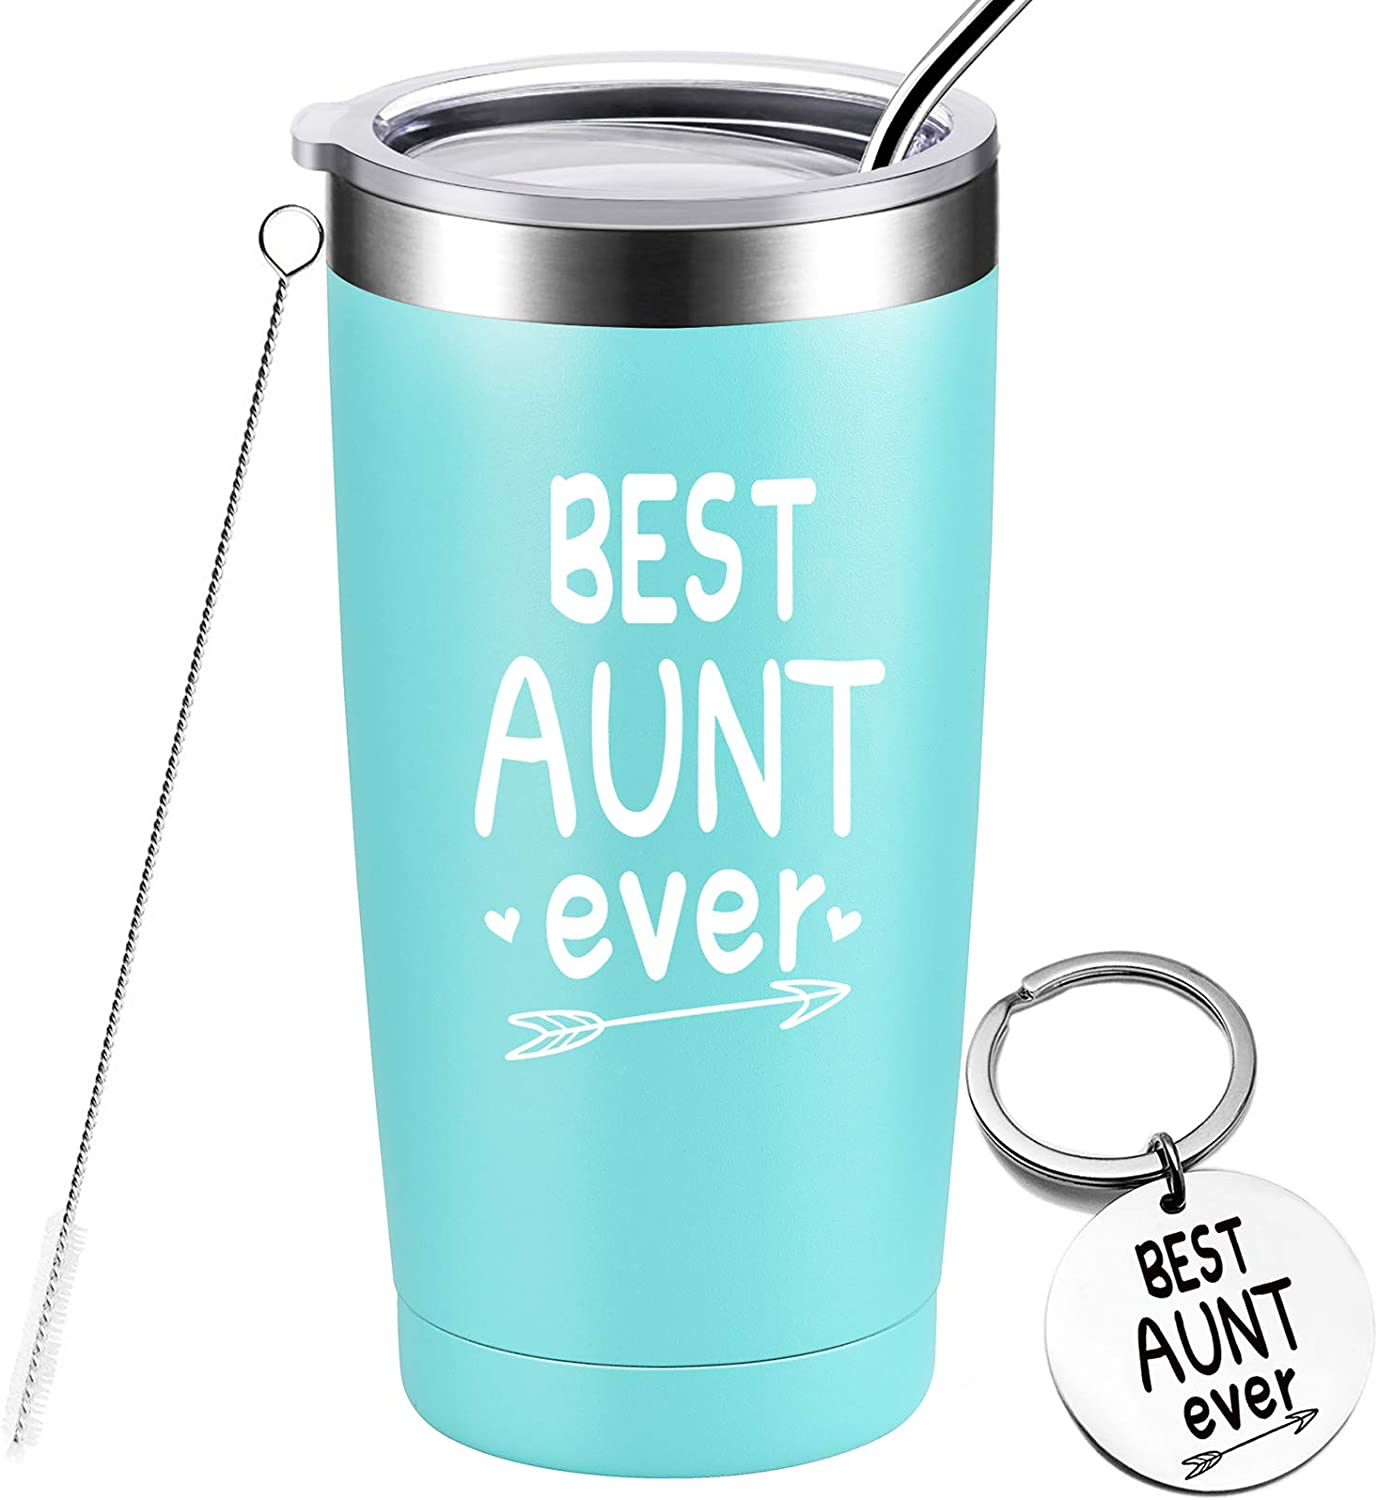 Best Aunt Ever - Birthday Gifts for Aunt from Niece, Nephew, Funny Christmas Gifts for Auntie, Stainless Steel Insulated Tumbler with Keychain, 20 Ounce Mint